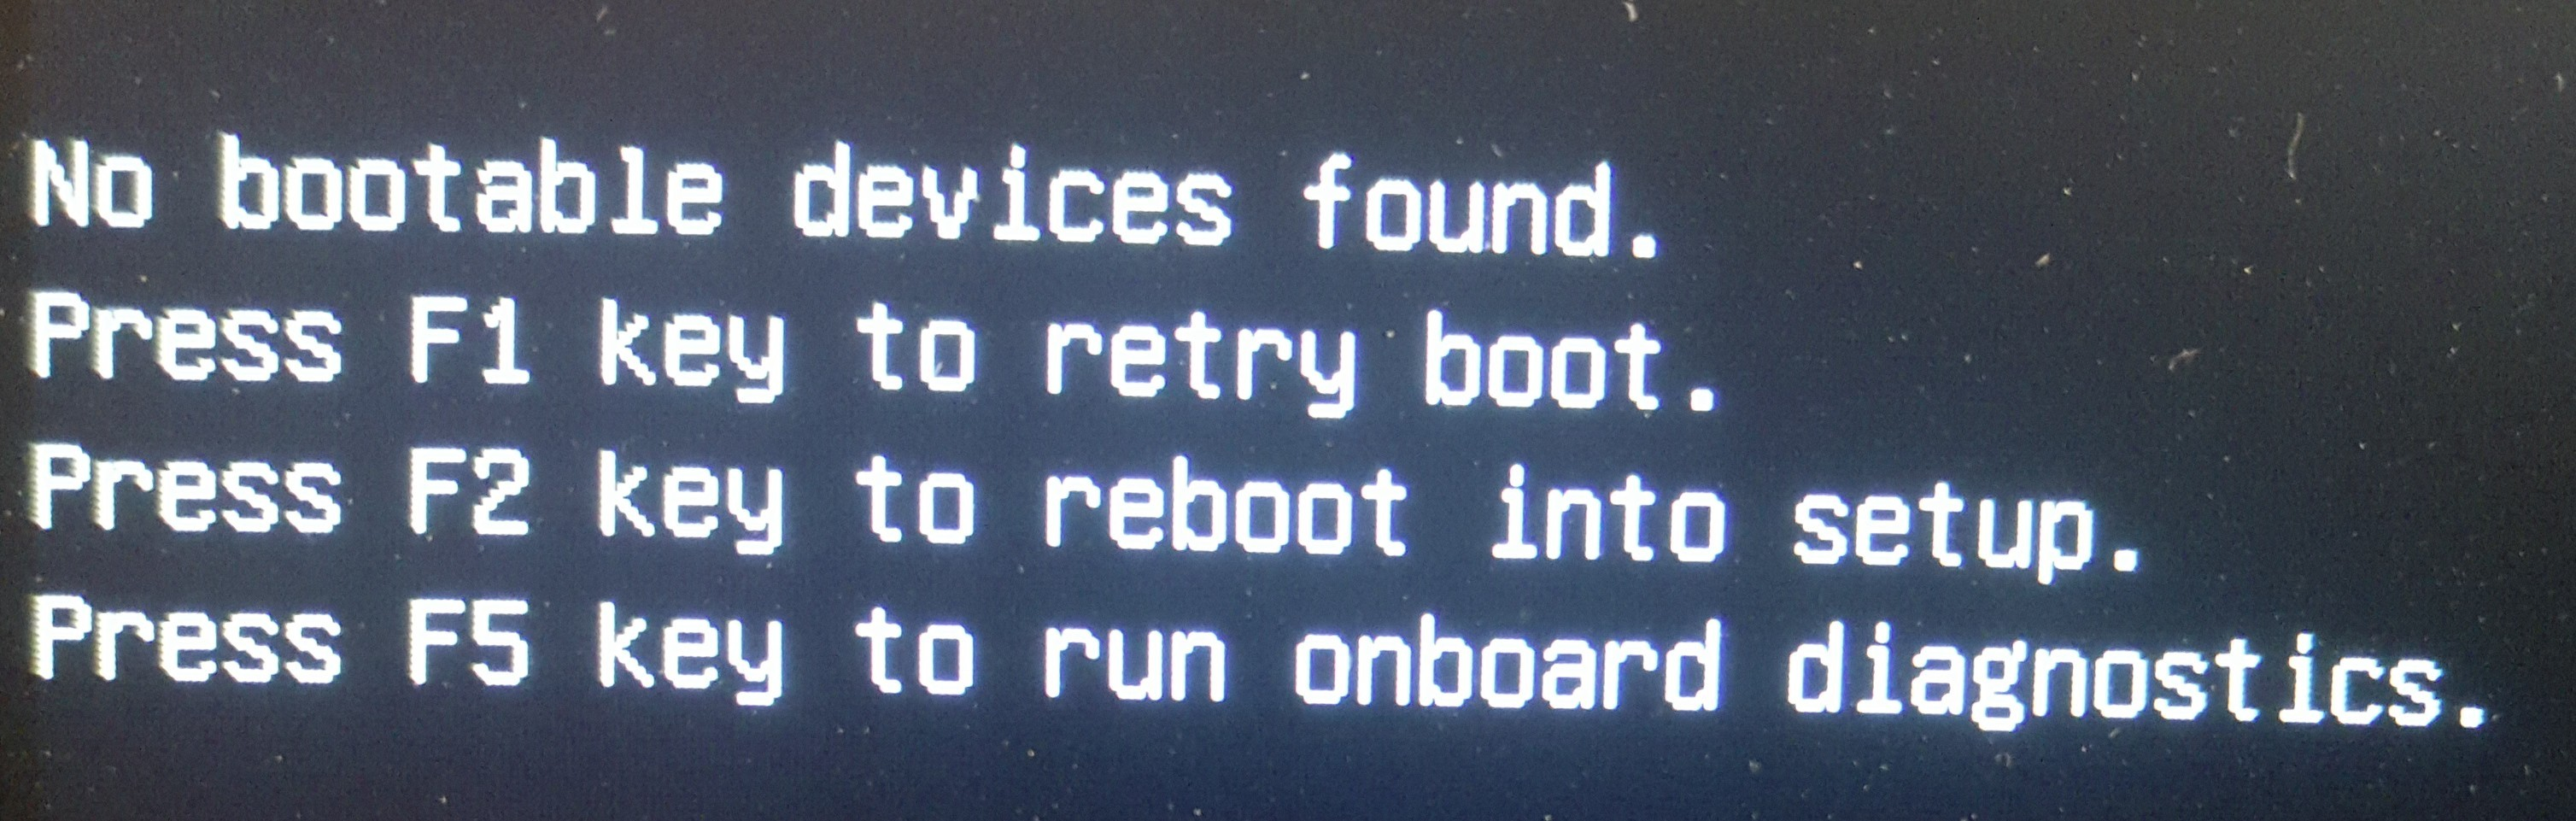 Fail to reboot into Ubuntu after successful update · Issue